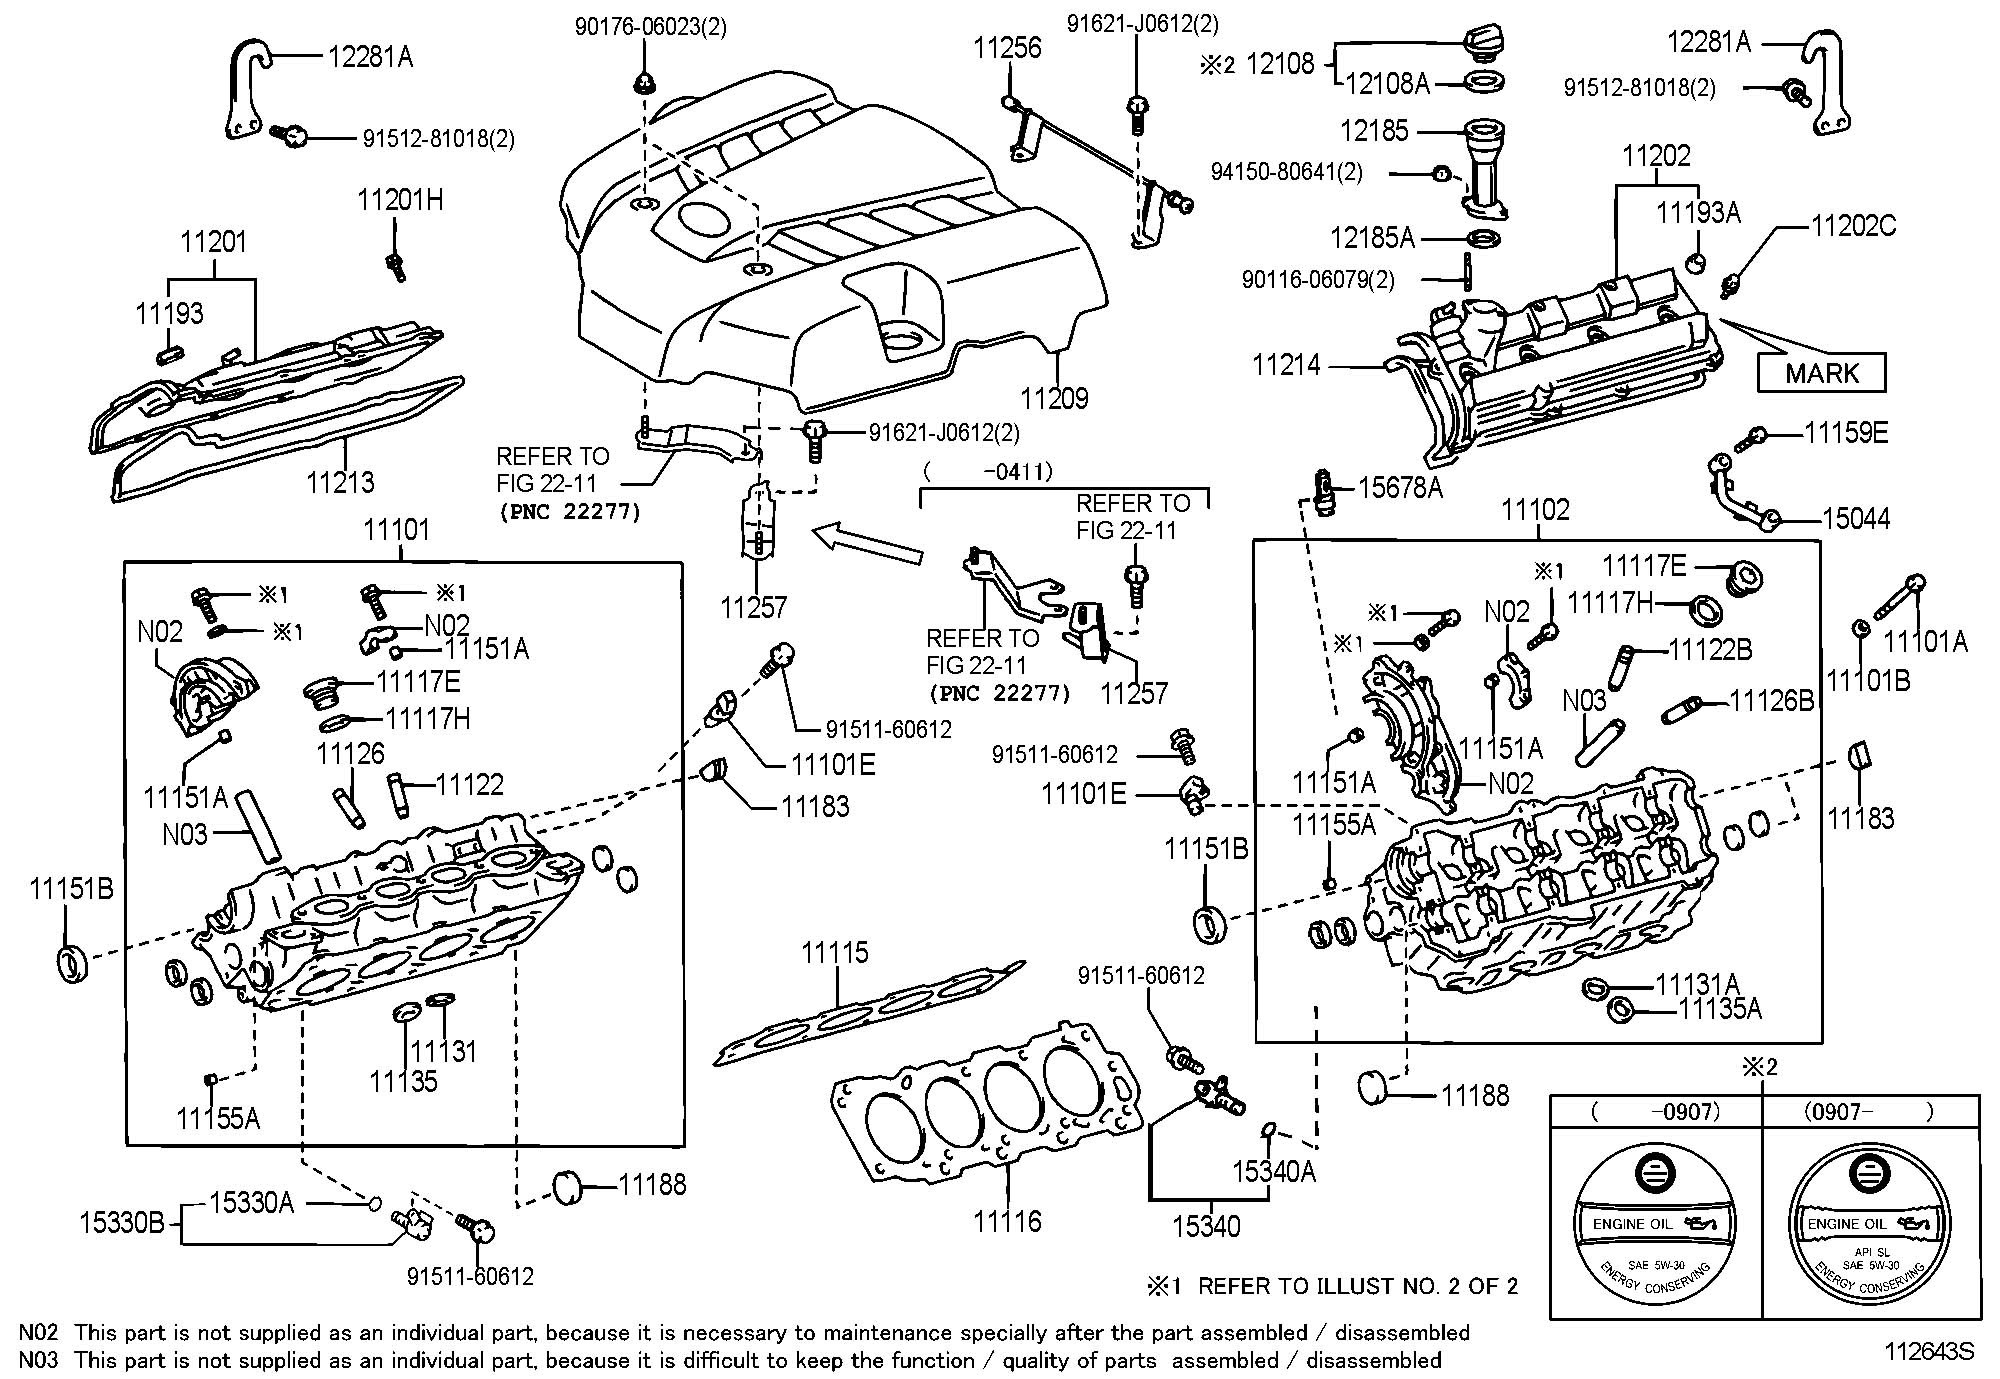 Lexus Es 300 Engine Diagram Free Wiring For You Diagrams 98 Es300 Library Rh 73 Codingcommunity De Is300 350